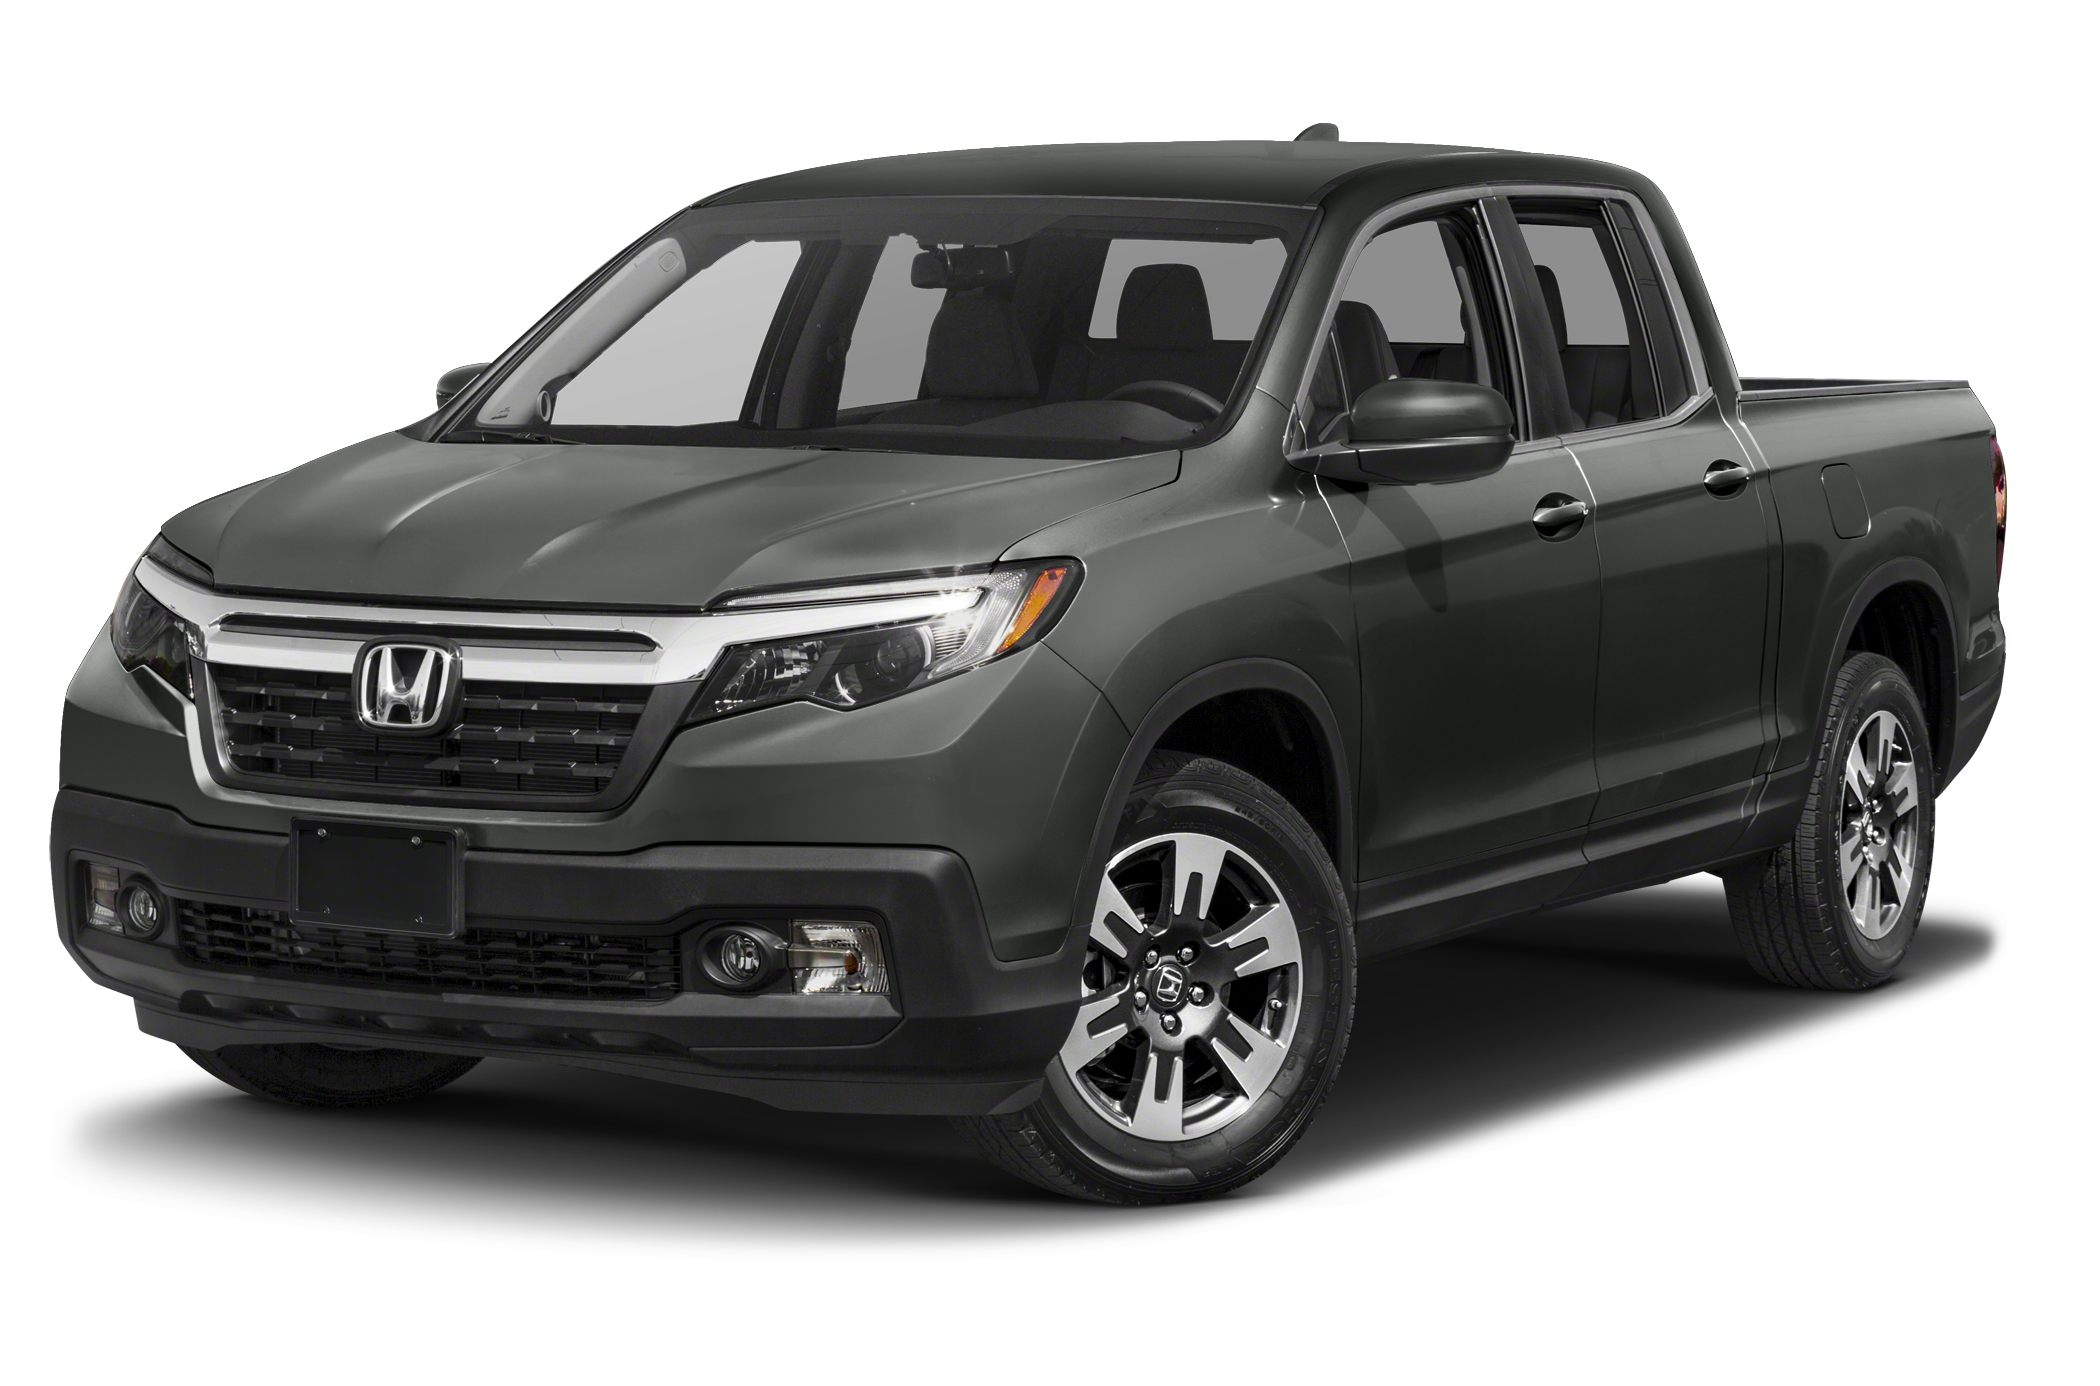 2017 Honda Ridgeline RTL You can put stock in this purchase Happily tags things along Buy a new